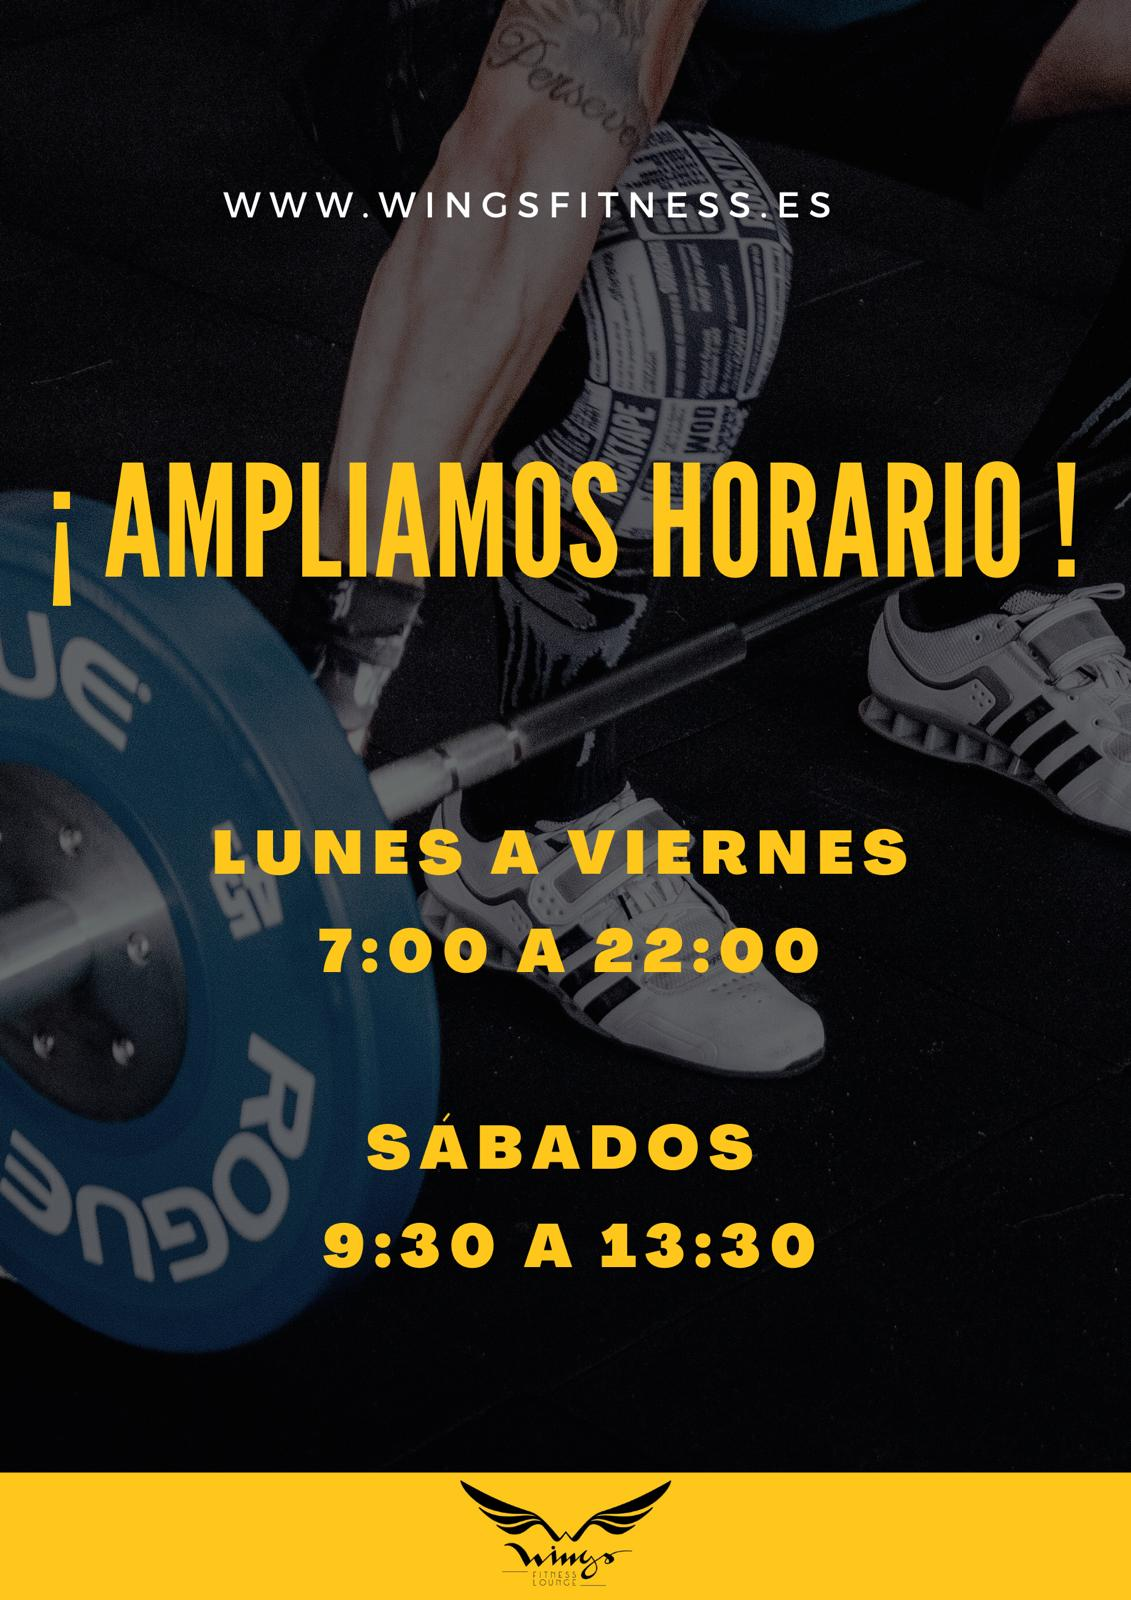 Ampliamos horario - Wings Fitness Lounge Valterna